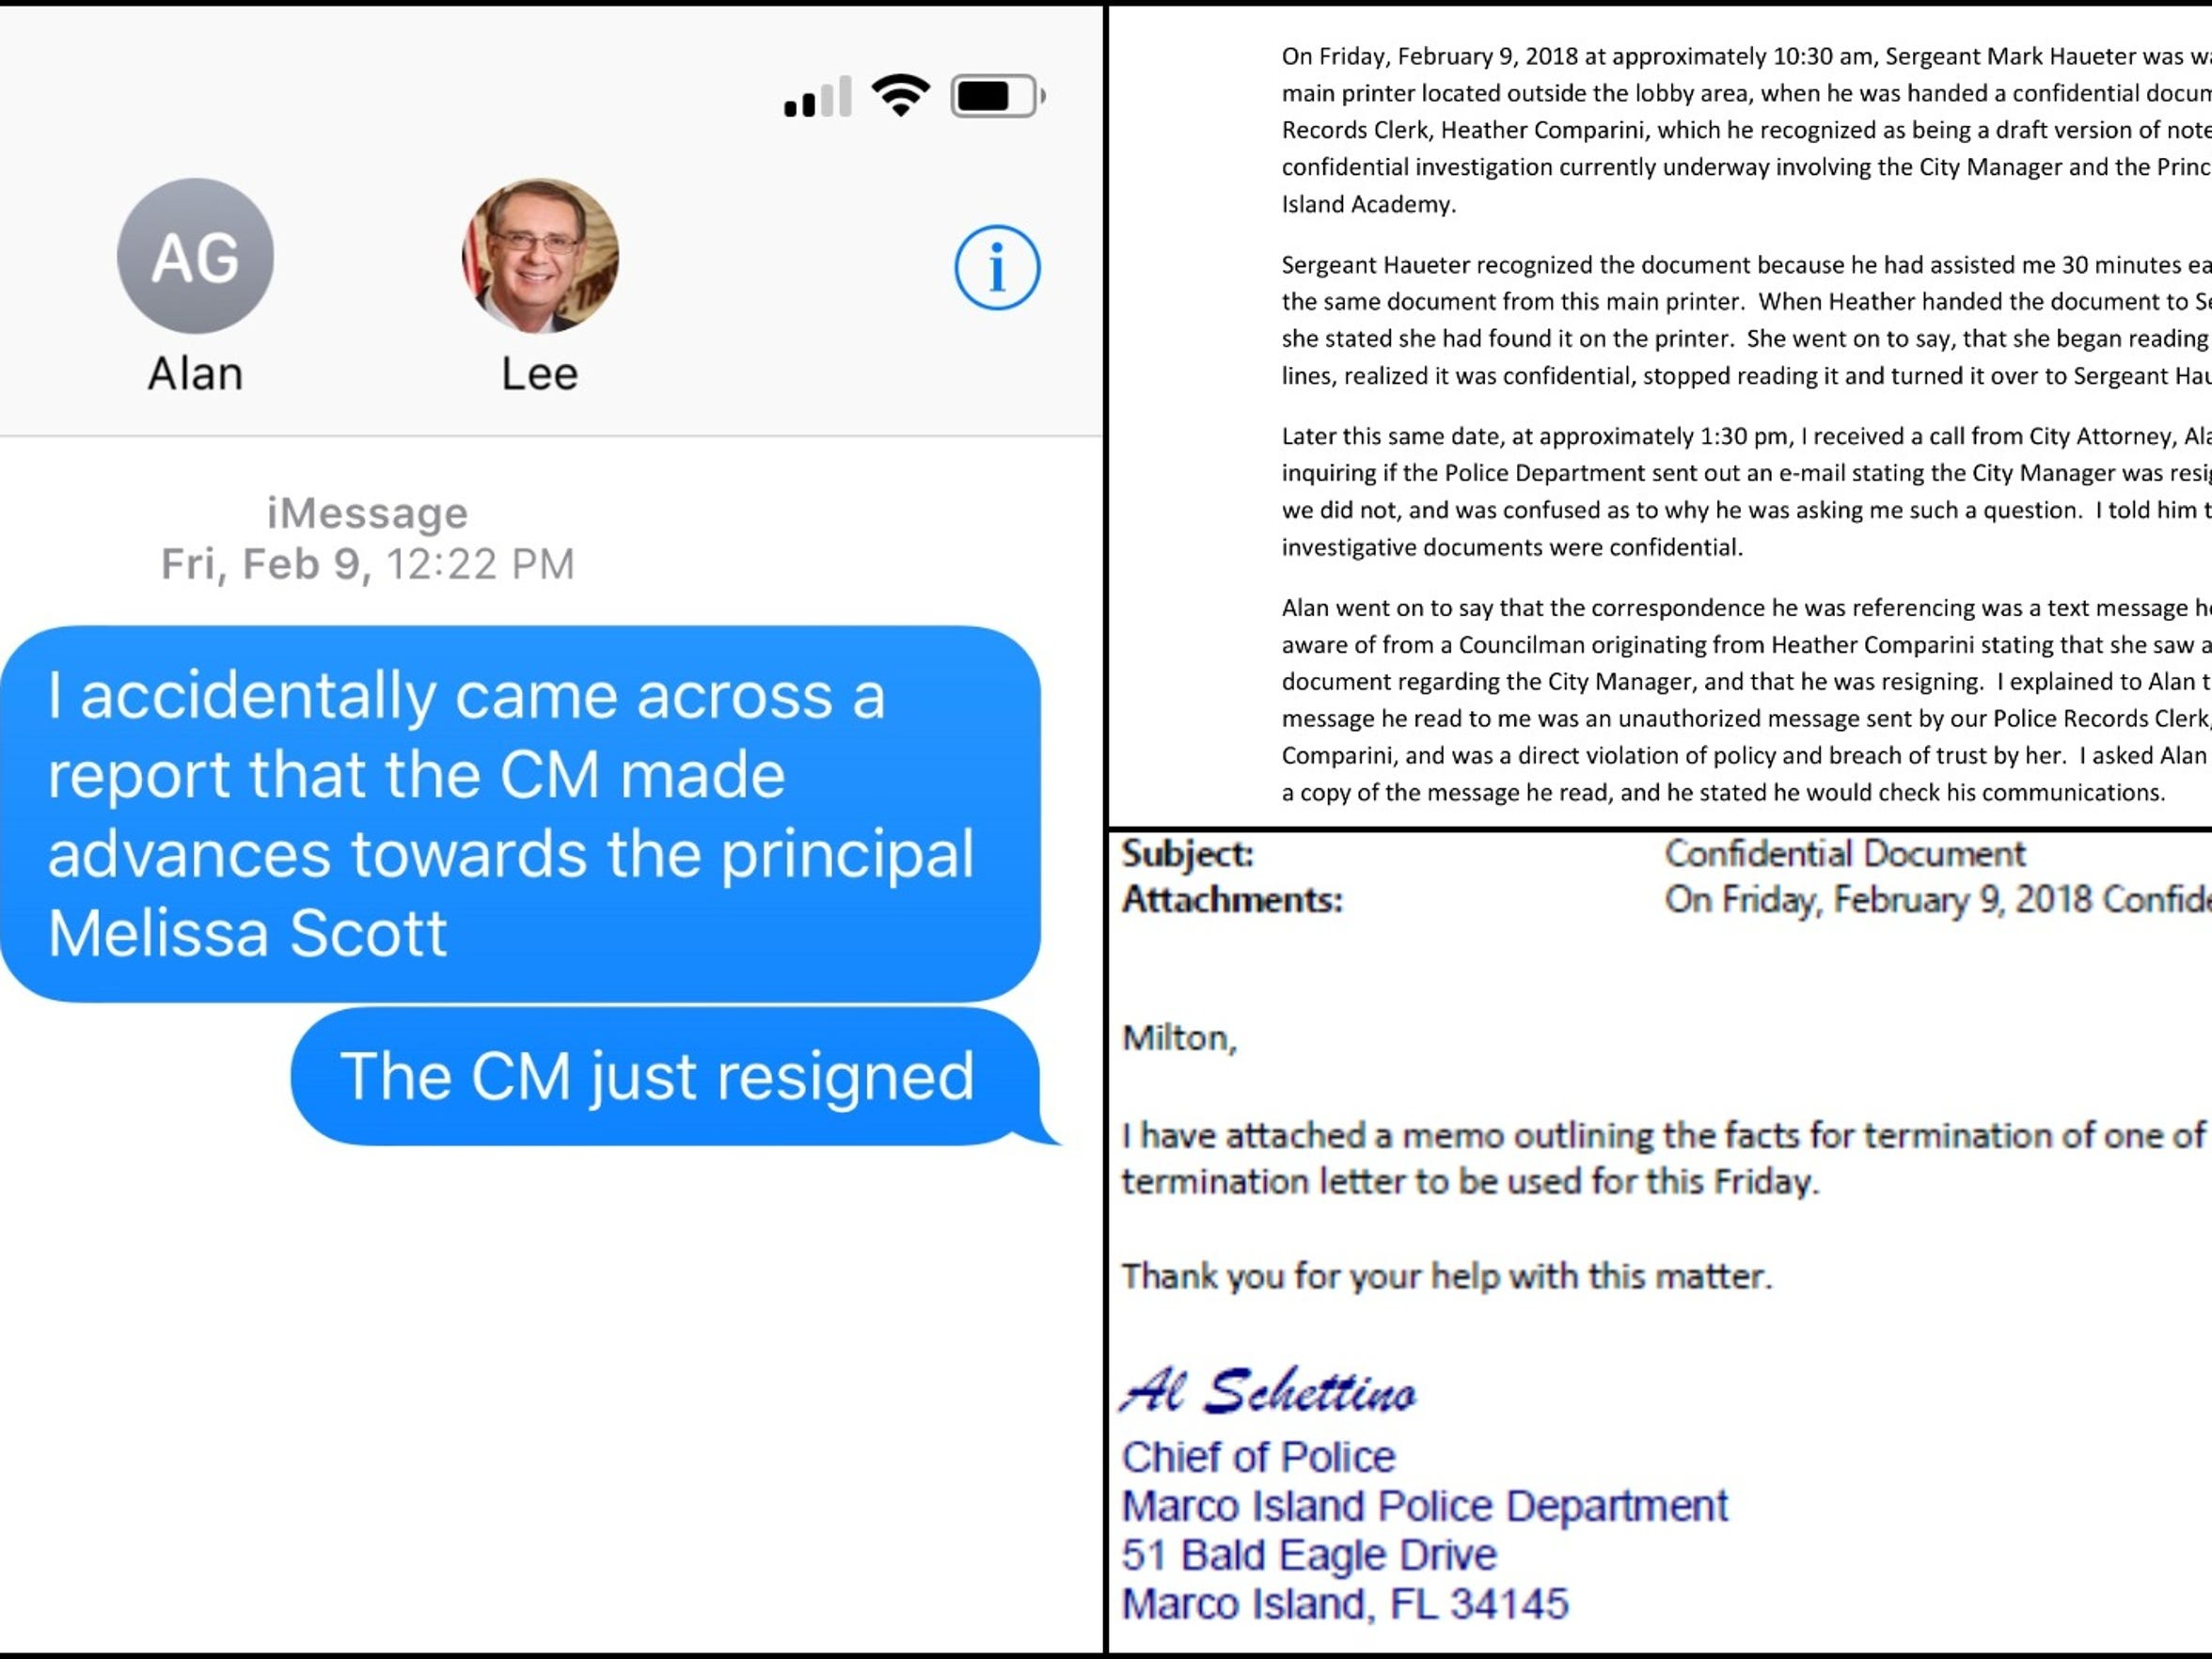 A termination letter for Marco Island police records clerk Heather Comparini was requested after it was suspected that she leaked information about the investigation into former City Manager Lee Niblock.